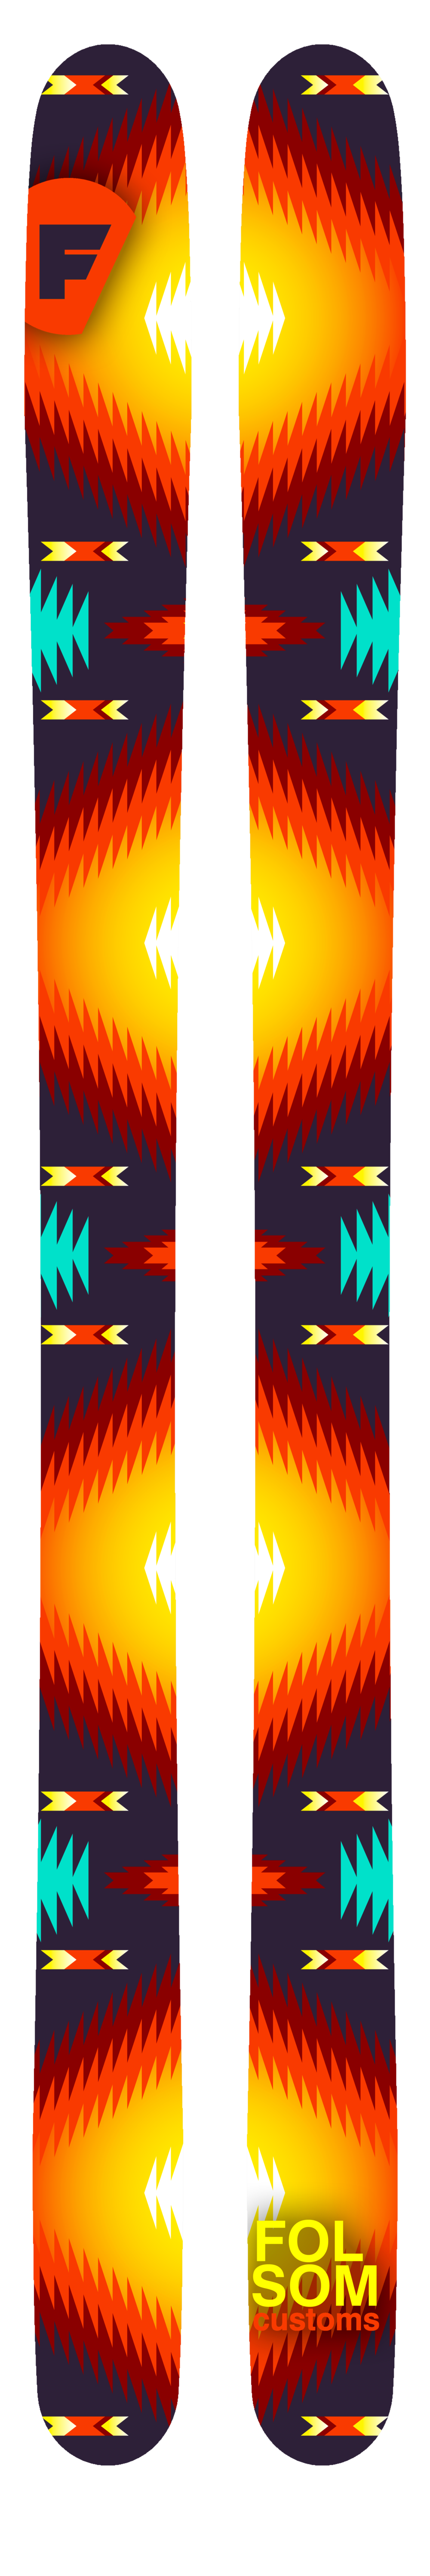 Folsom Skis Native Sun Graphic, $100